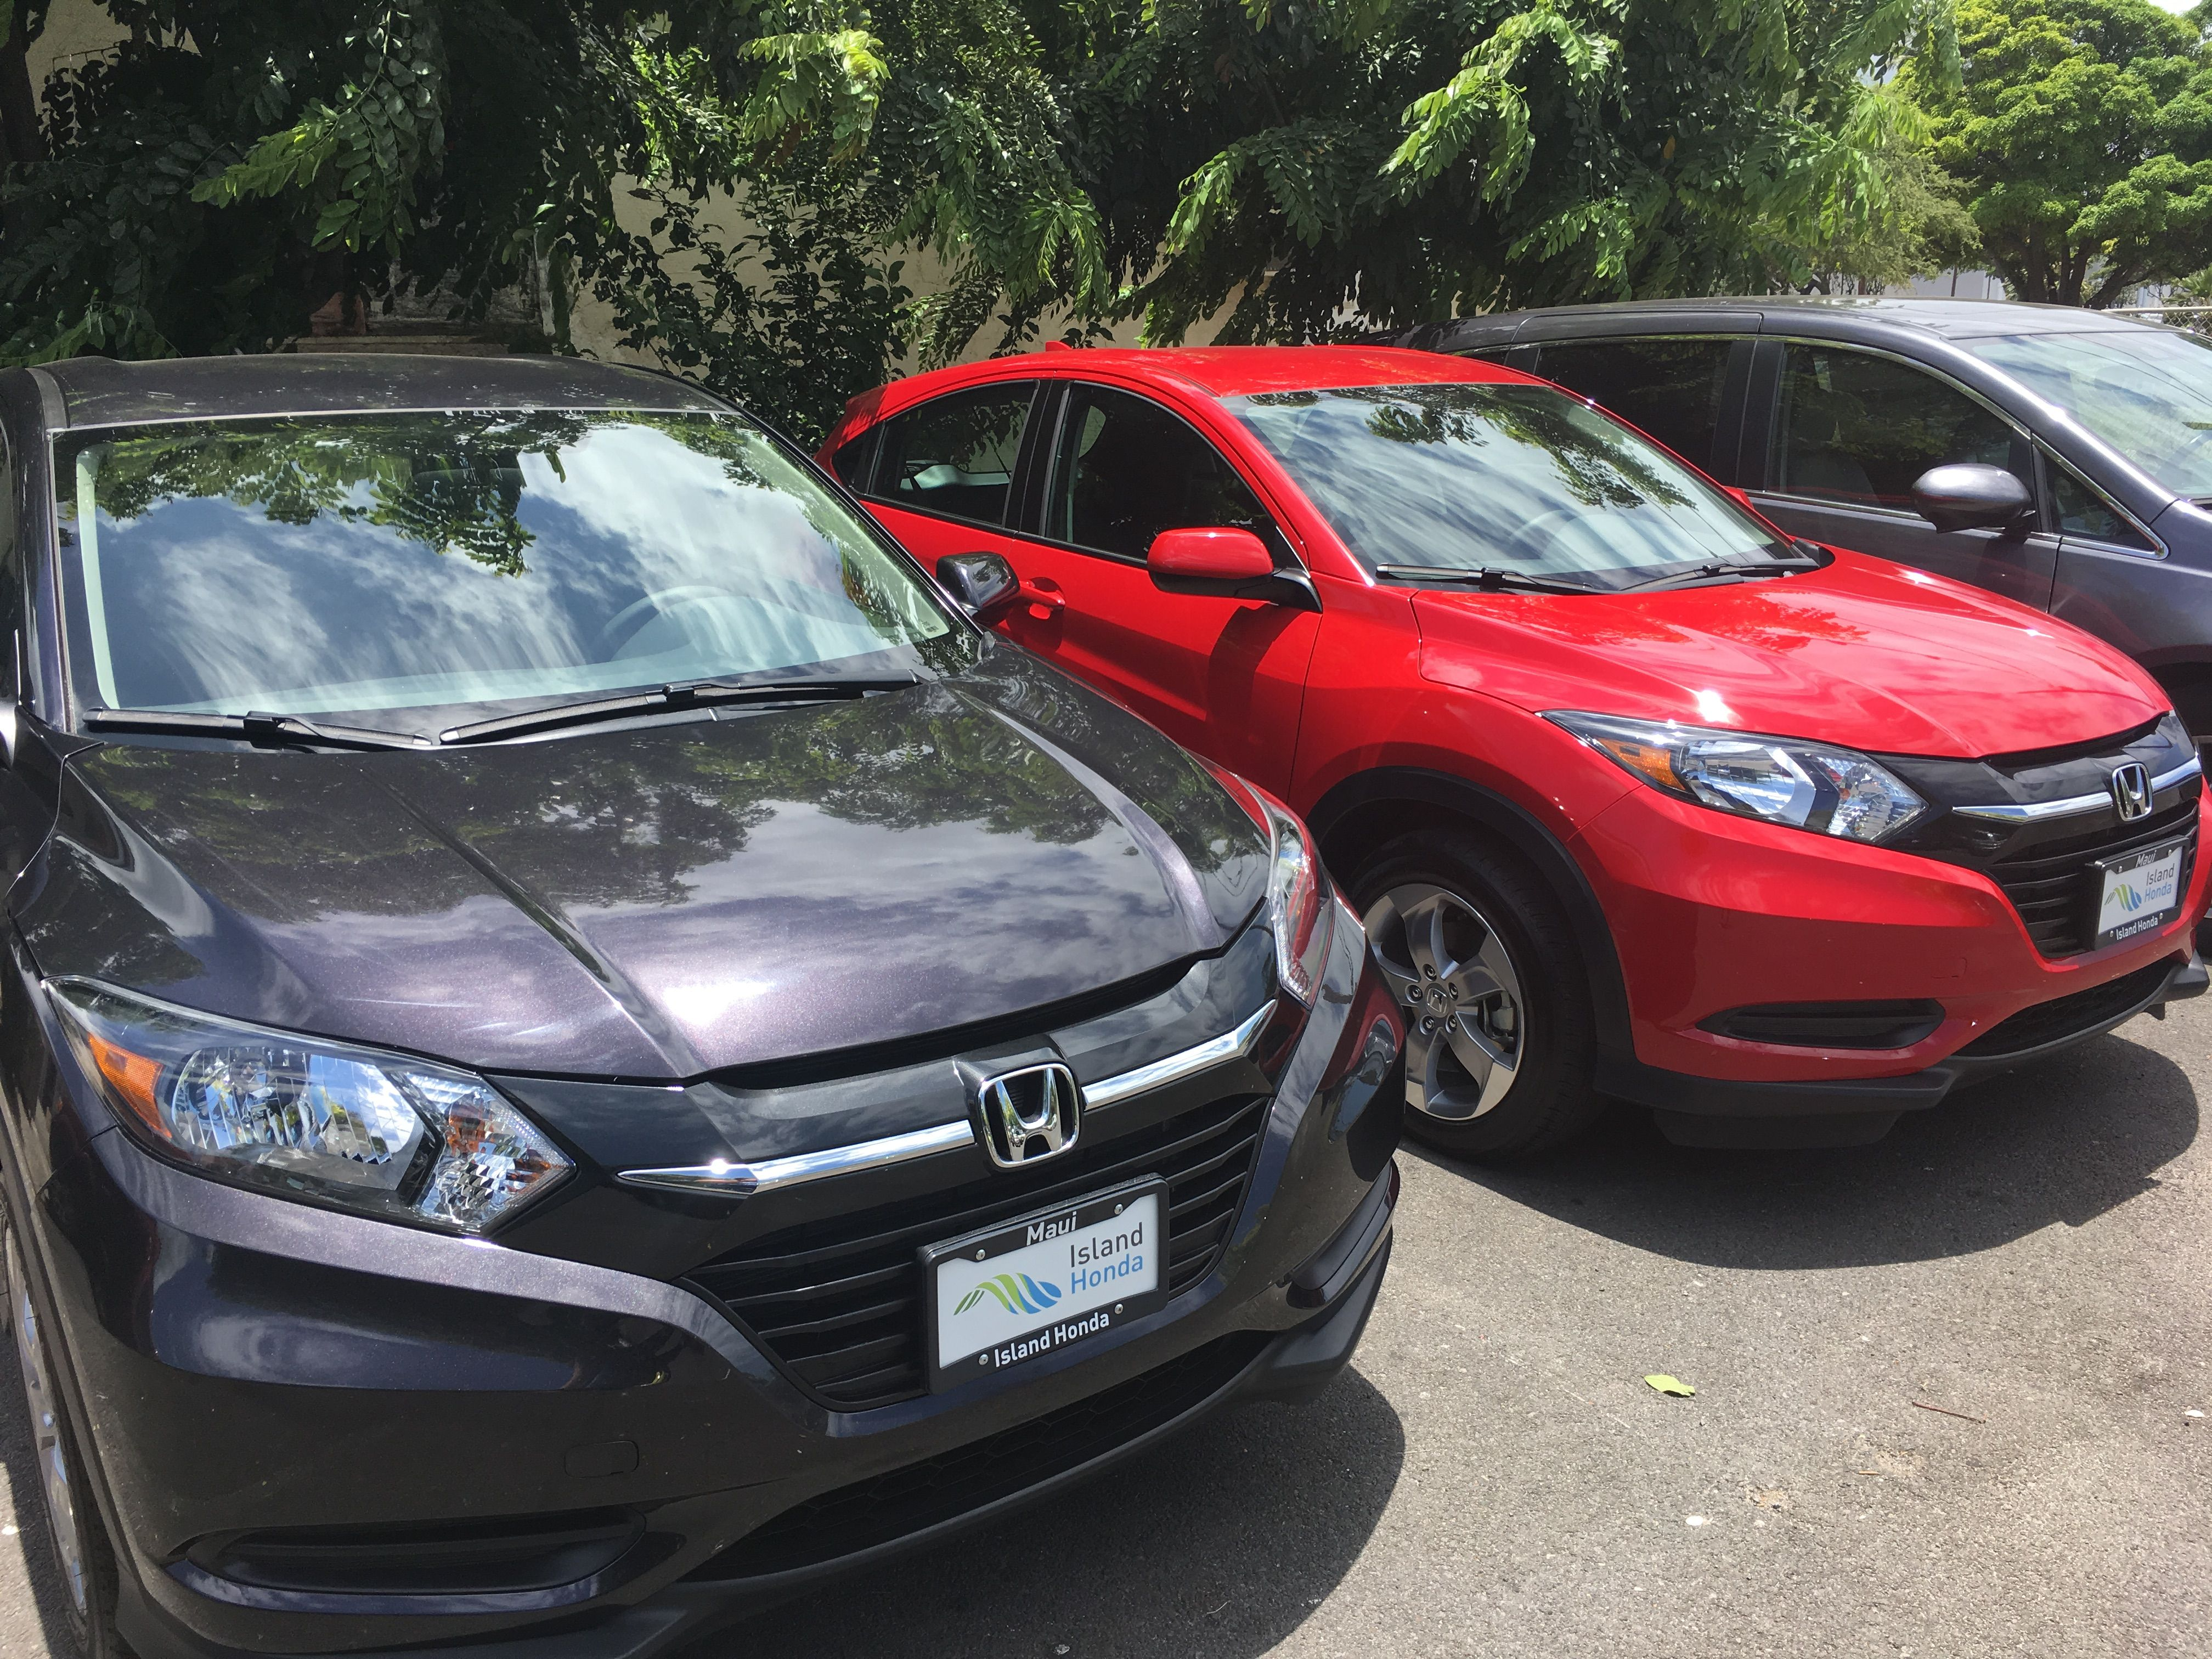 A Gifts from GOD☆ by Cindy Manzano Suv, Suv car, Vehicles